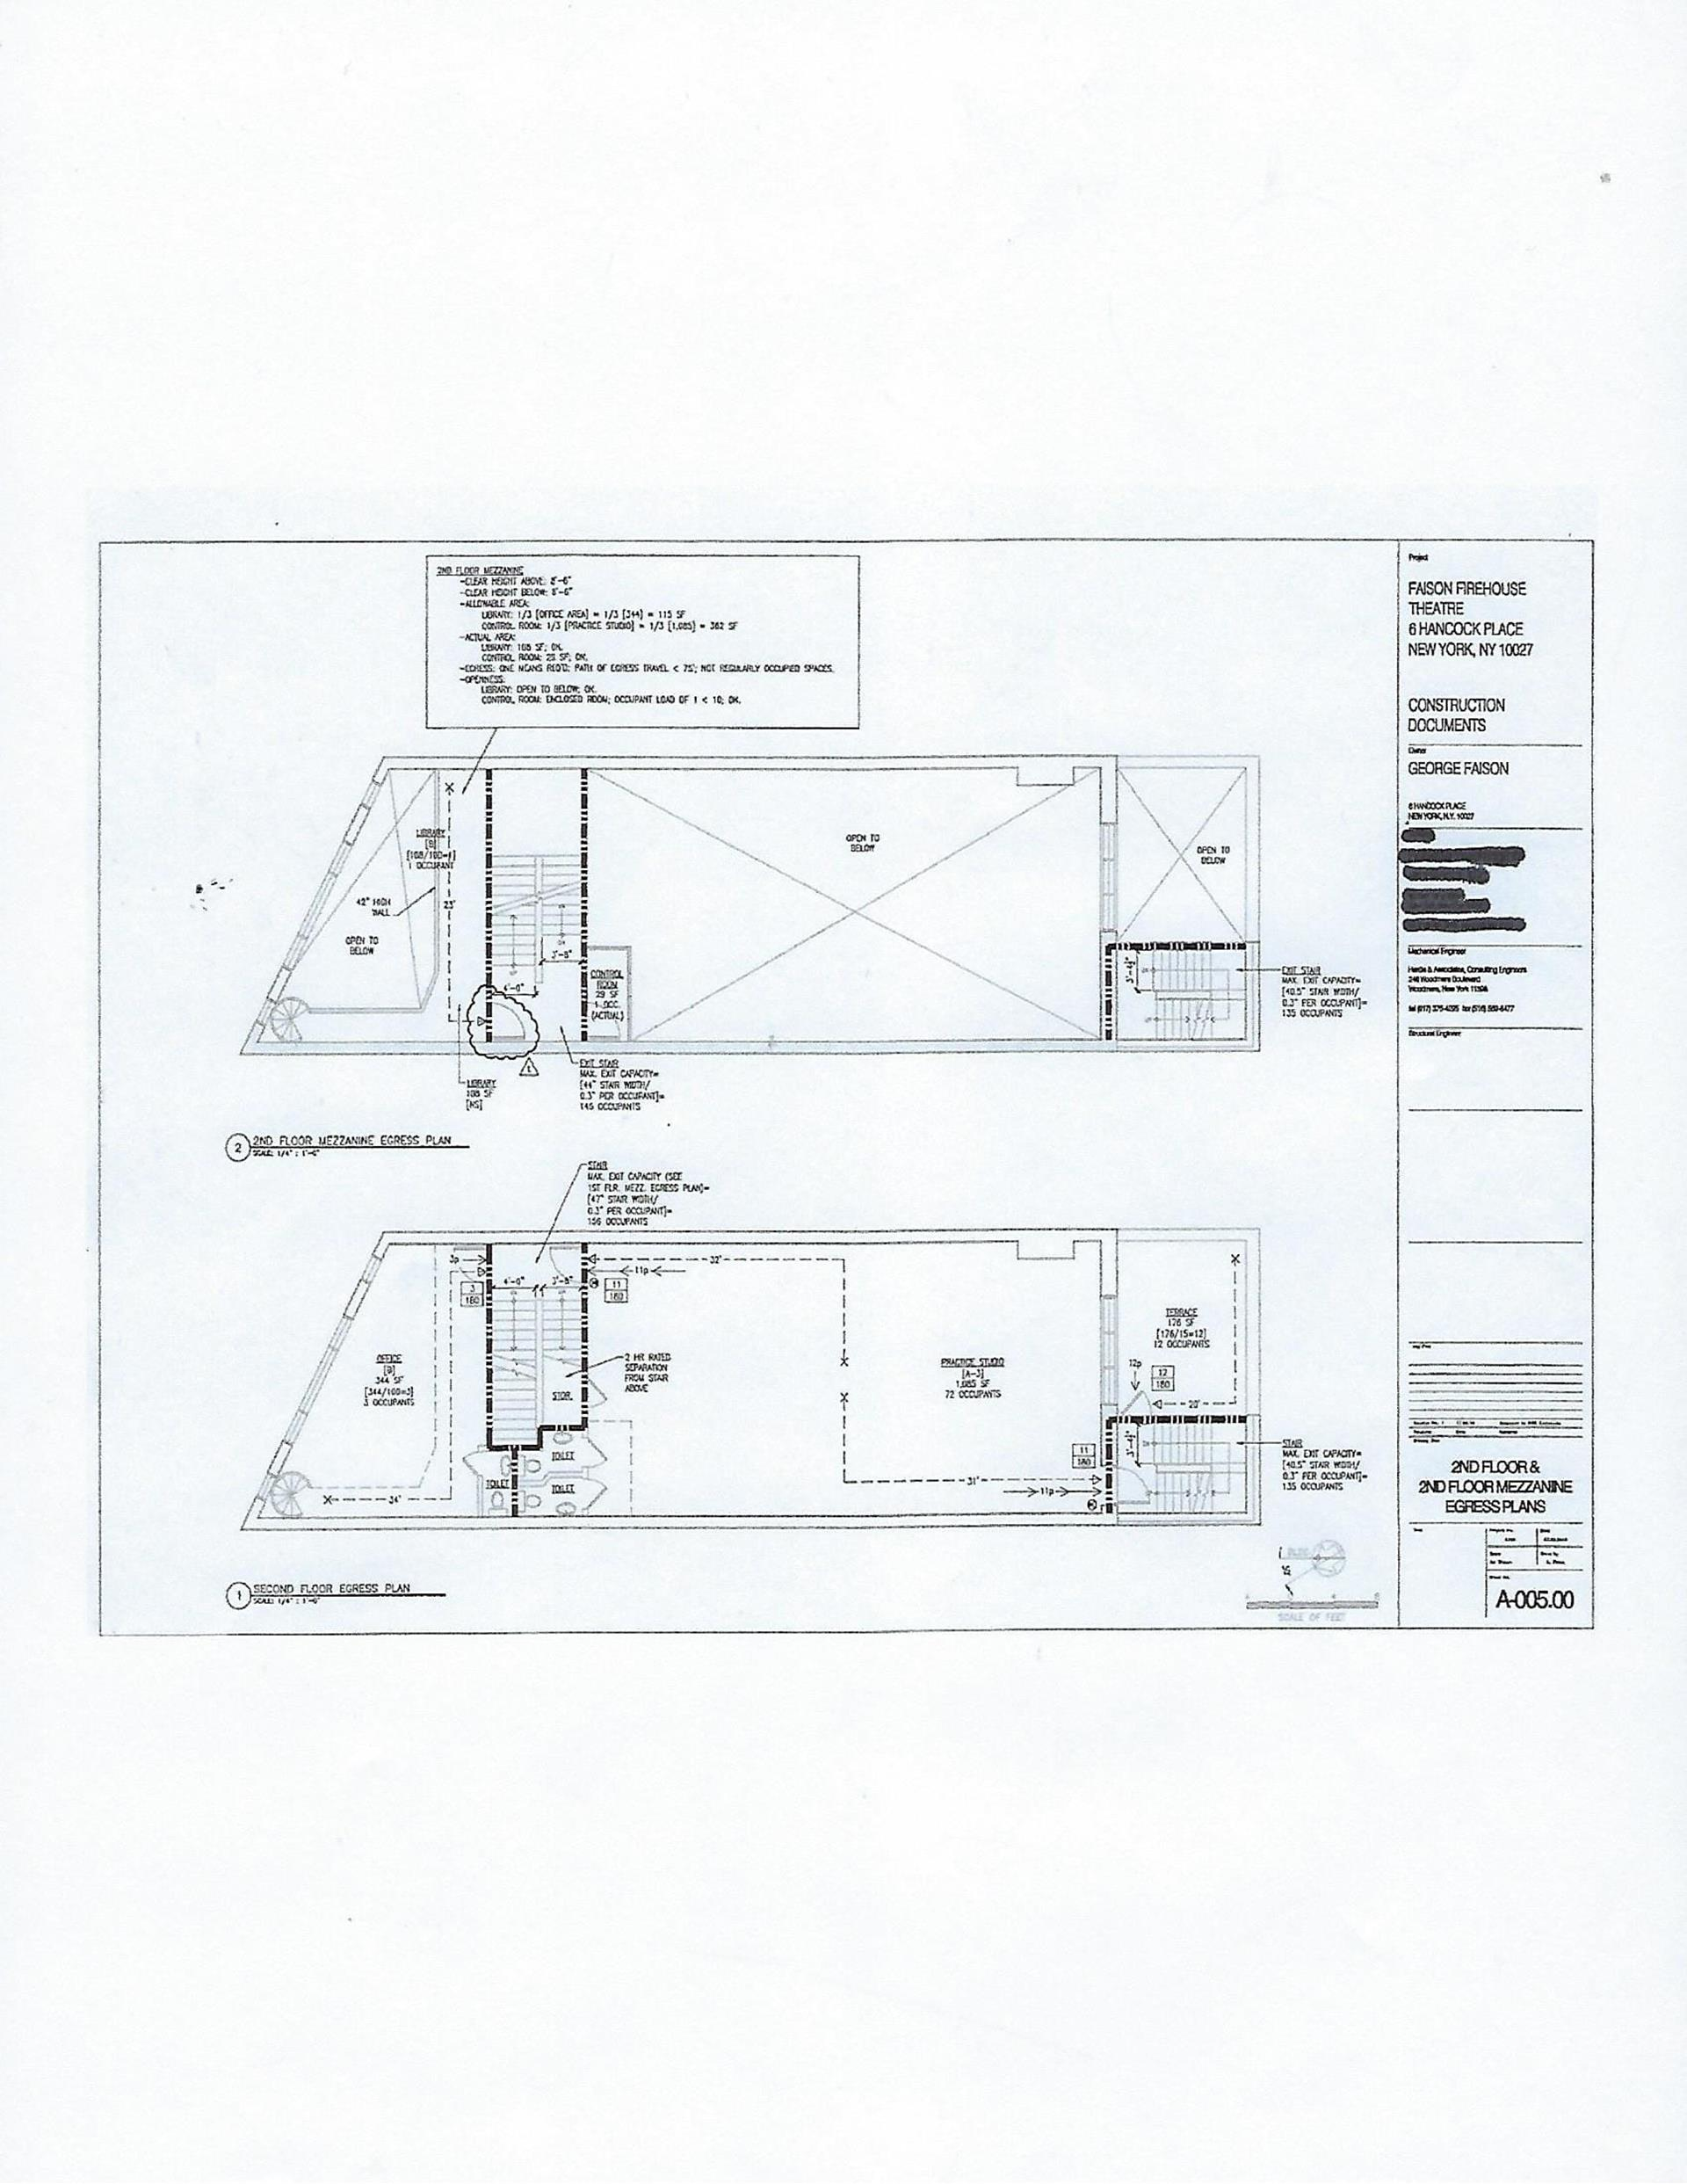 Floor plan of 4-6 Hancock Pl - Harlem, New York